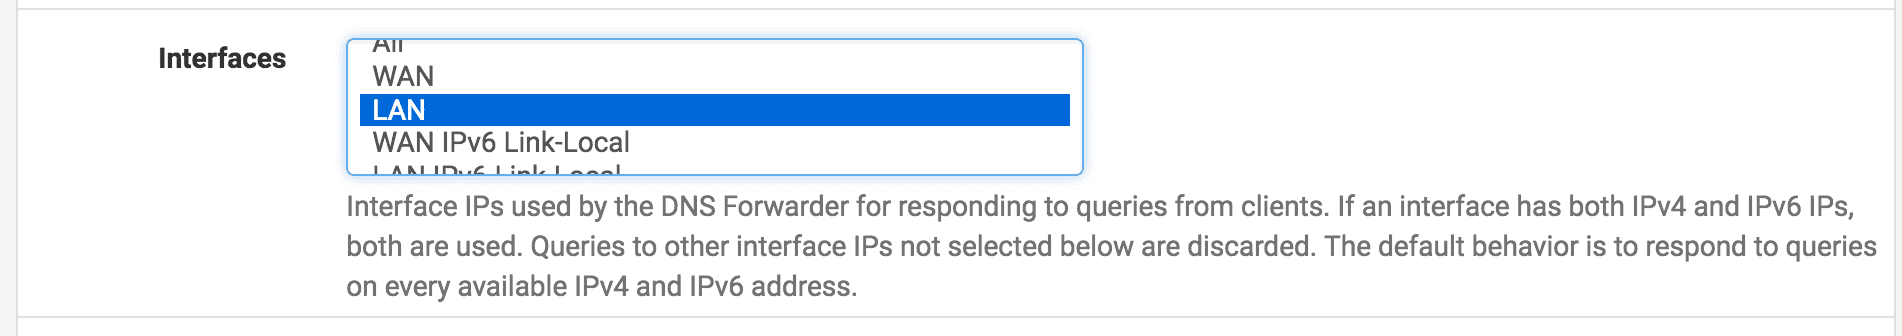 pfSense Road Warrior Configuration IPSEC 0007